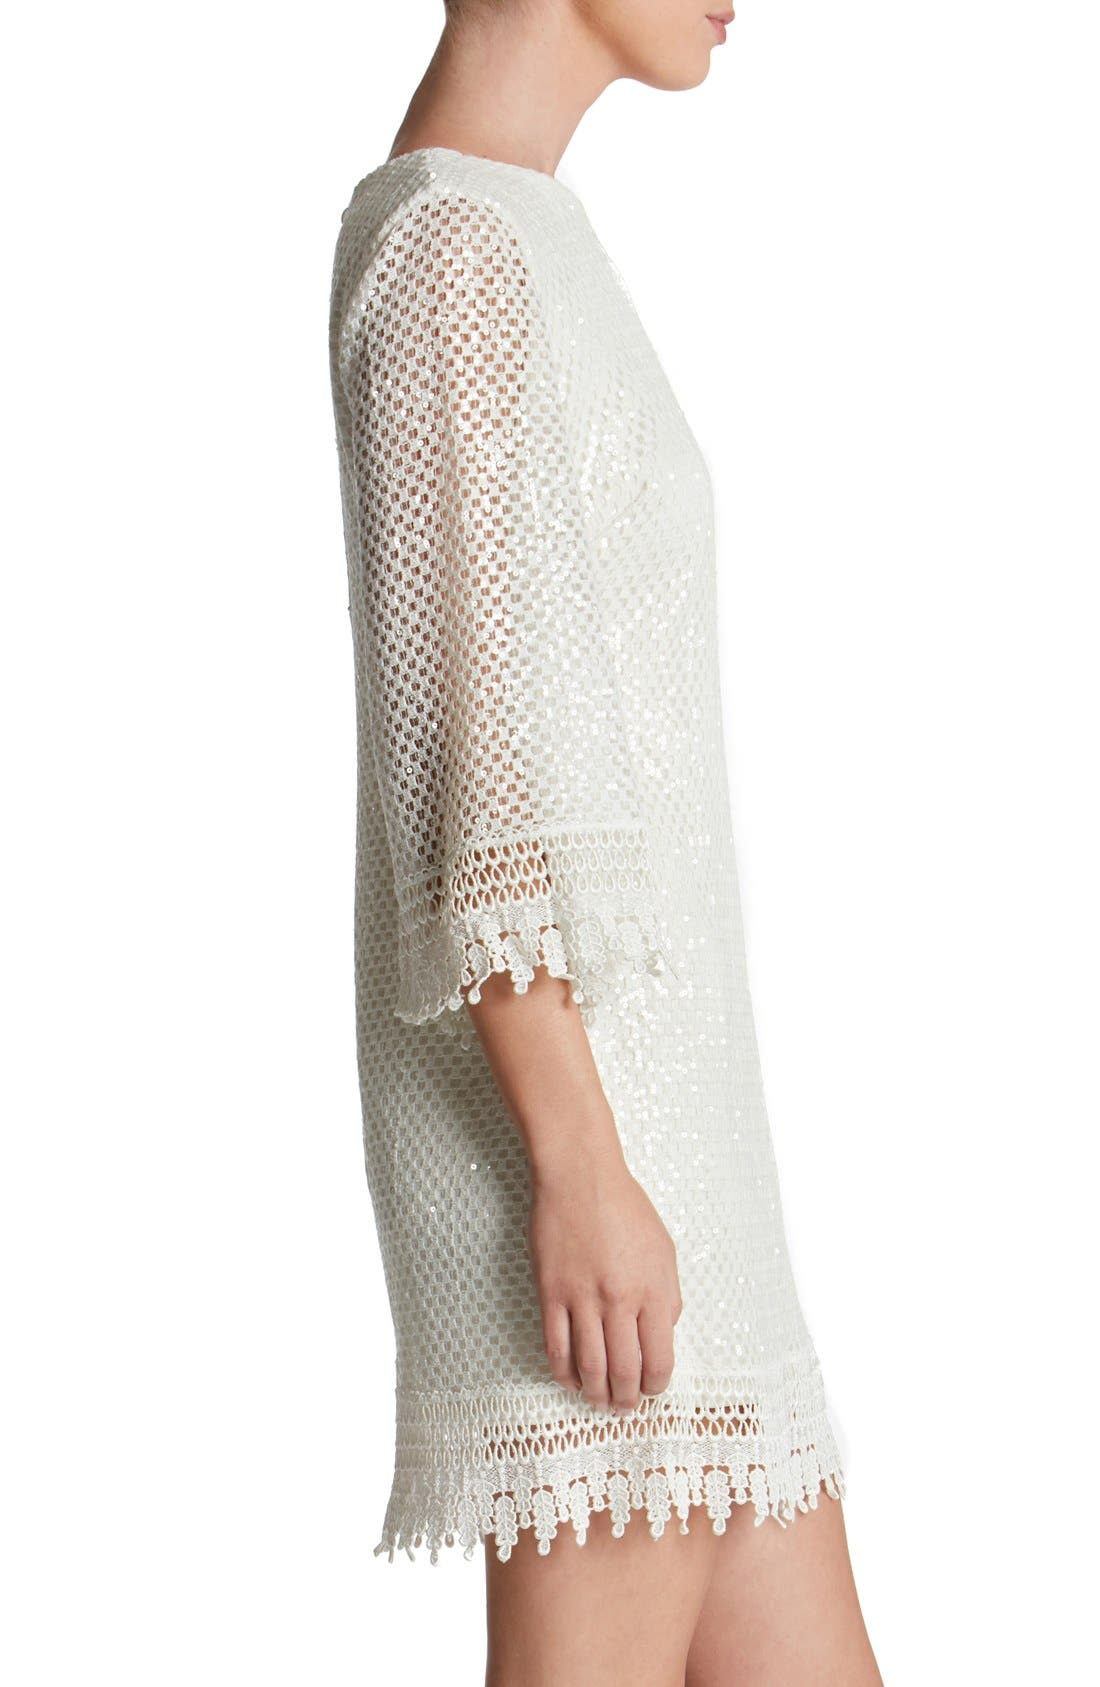 'Phoebe' Sequin Crochet Shift Dress,                             Alternate thumbnail 3, color,                             White